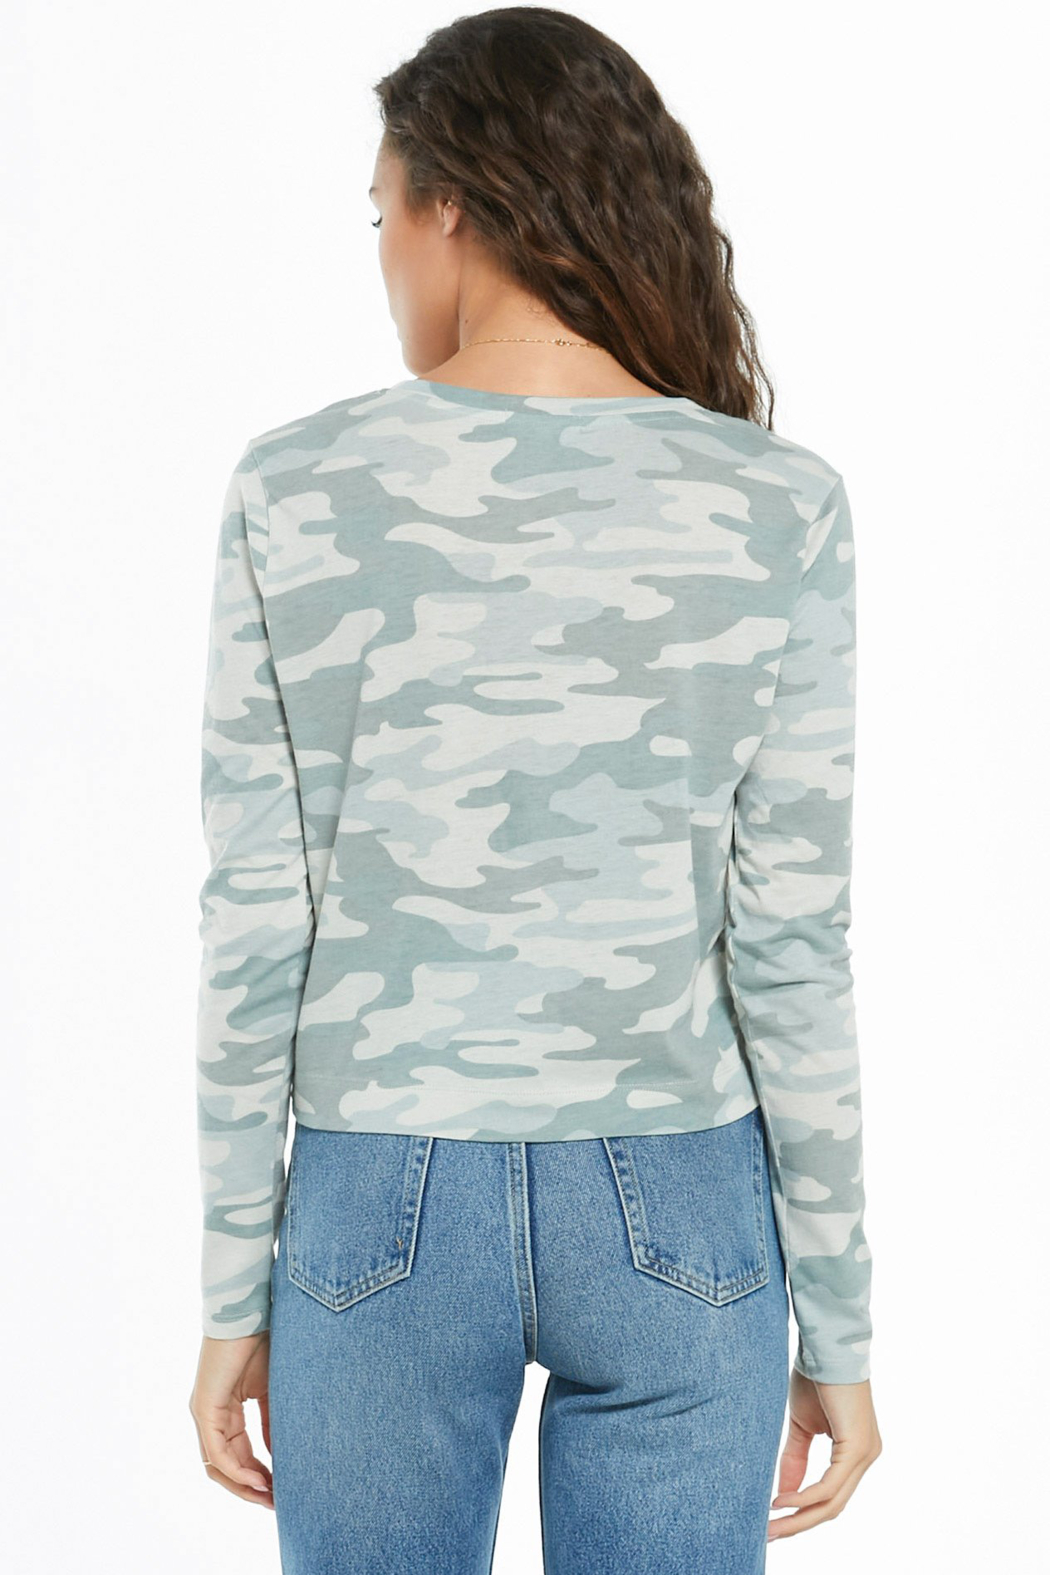 z supply Skimmer Camo Pocket T - Side Cropped Image